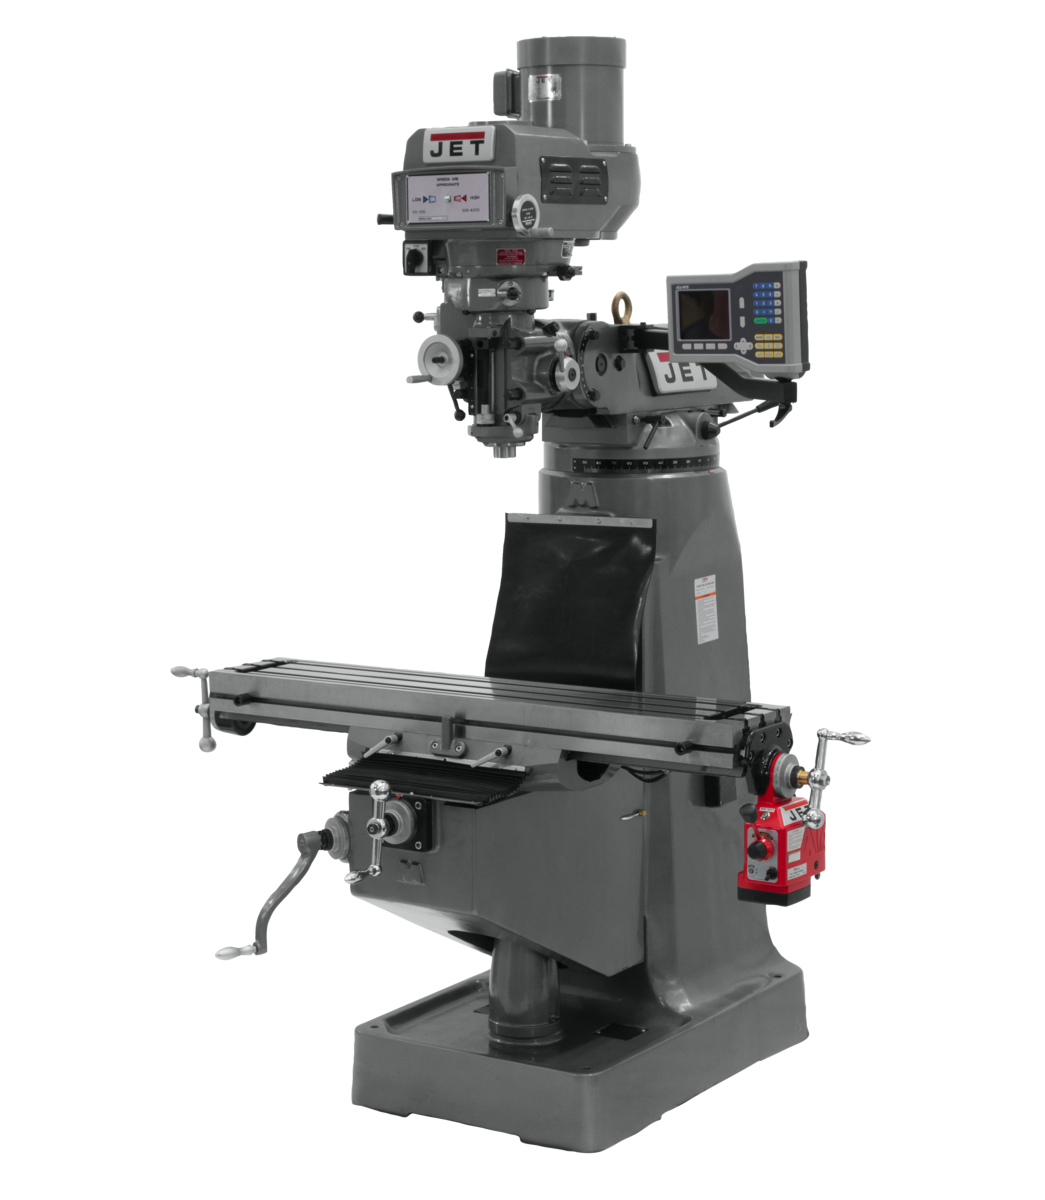 """JTM-4VS Mill With ACU-RITE 203 DRO With X-Axis Powerfeed and 6"""" Riser Block"""